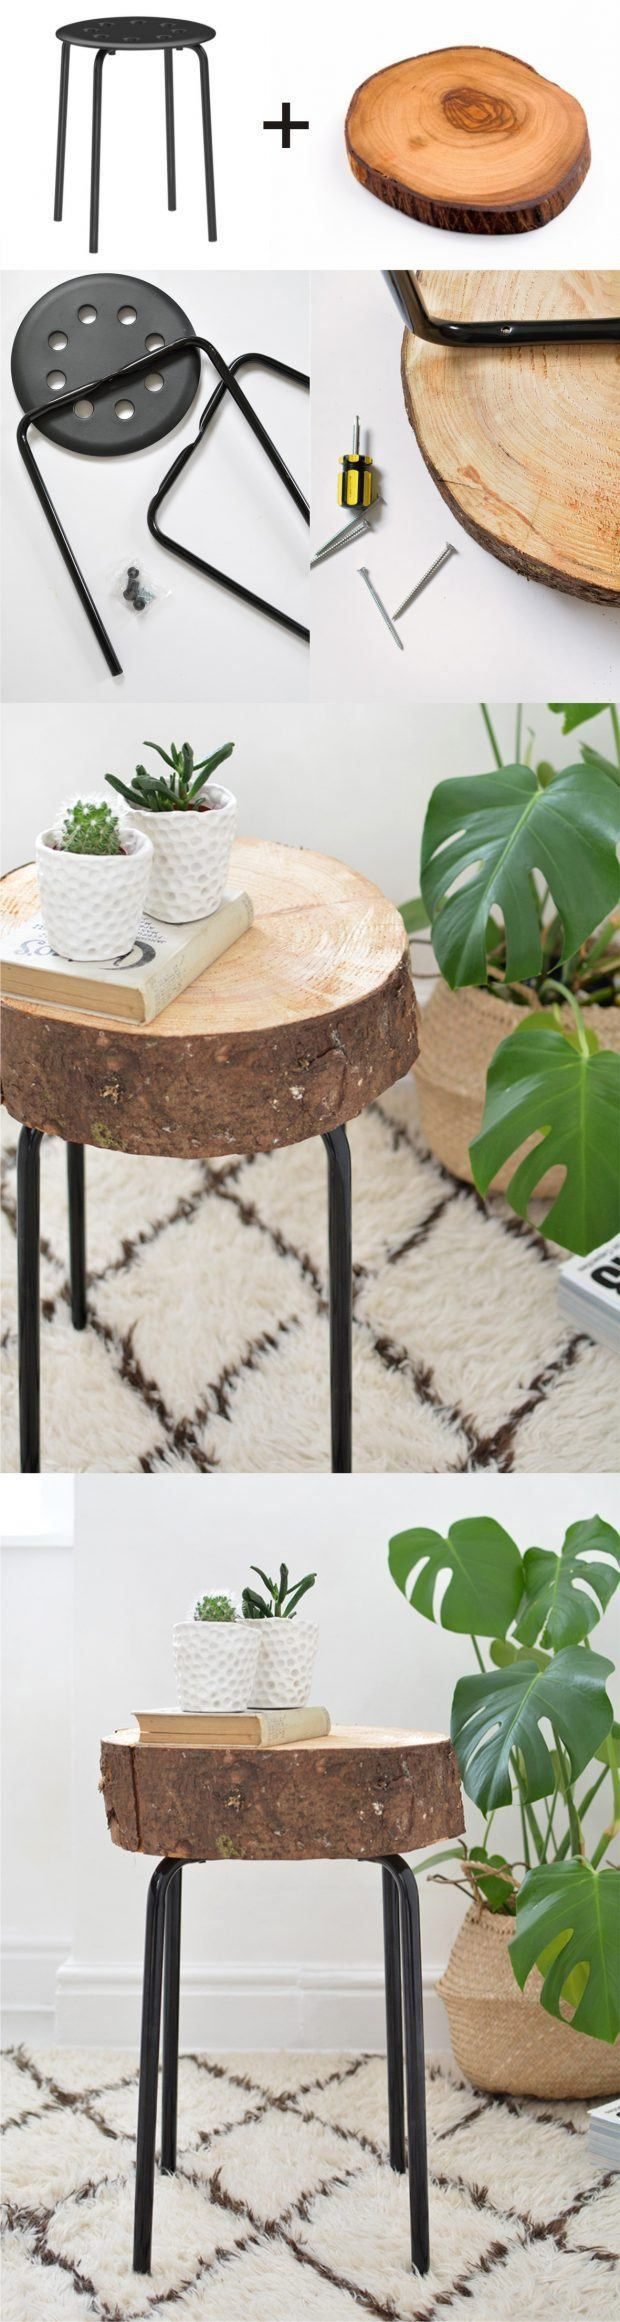 Ikea Hack with stool and a trunk